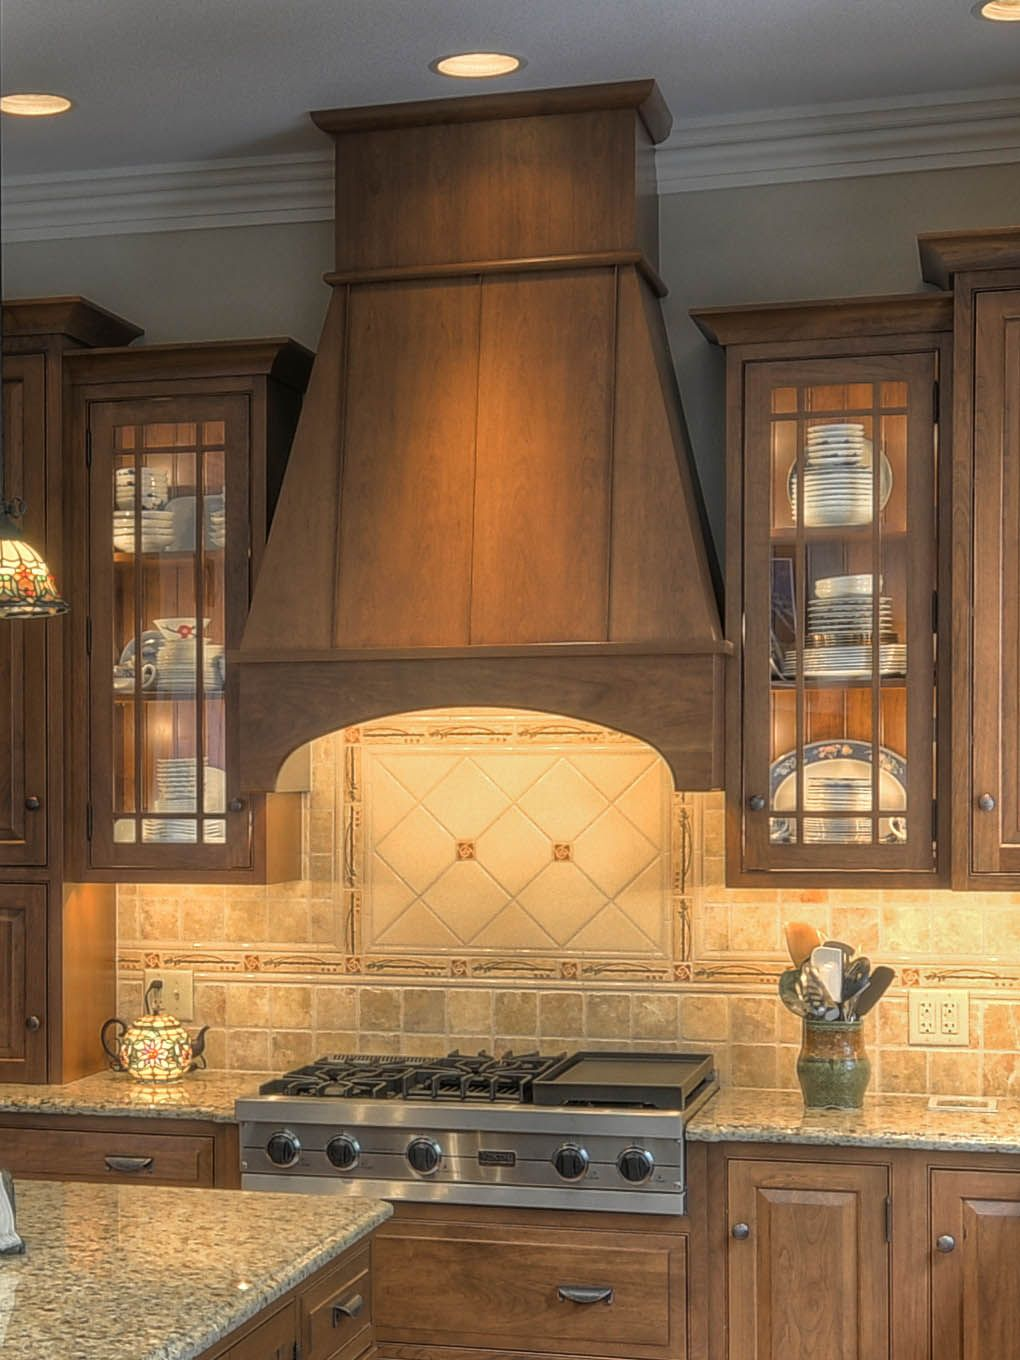 kitchen backsplash stove various cabinet incredible extraordinary small decor hoods including decoration cream using with subway and vent hood tile stone mounted wood steel white wall